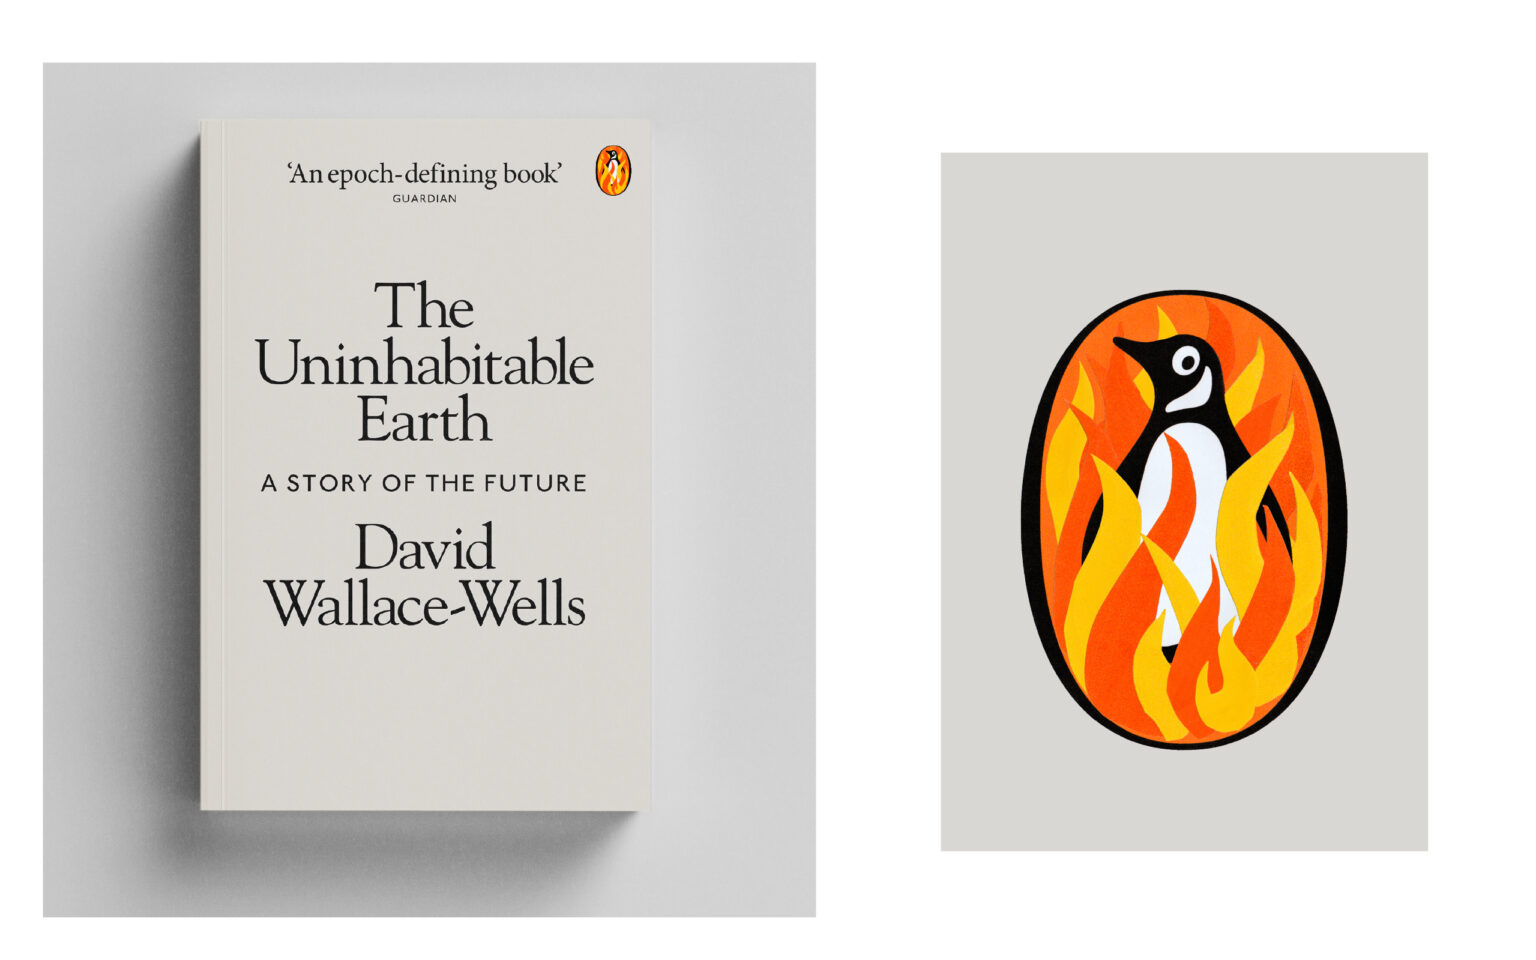 mockup of the inhabitable earth book cover with penguin on fire in logo